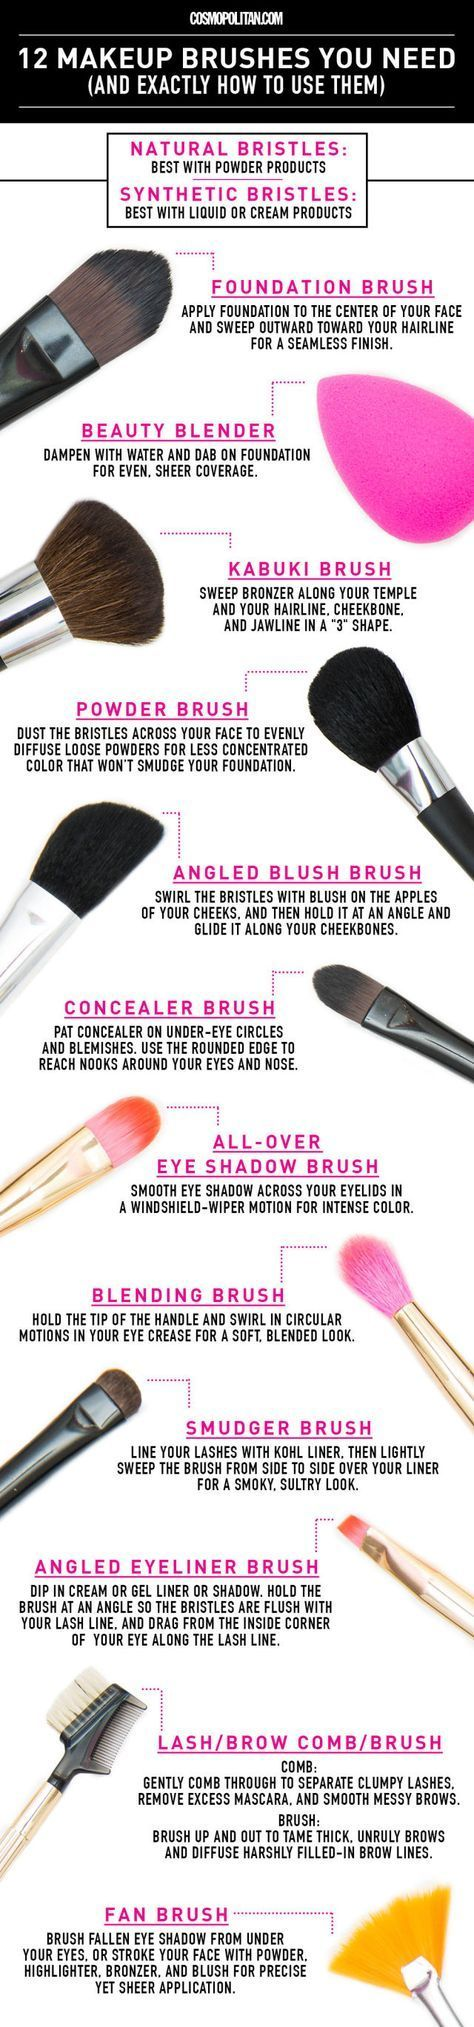 12 Makeup Brushes You Need and Exactly How to Use Them - They come in different shapes and sizes for a reason!. #cosmetics #makeup #beauty #shoptagr